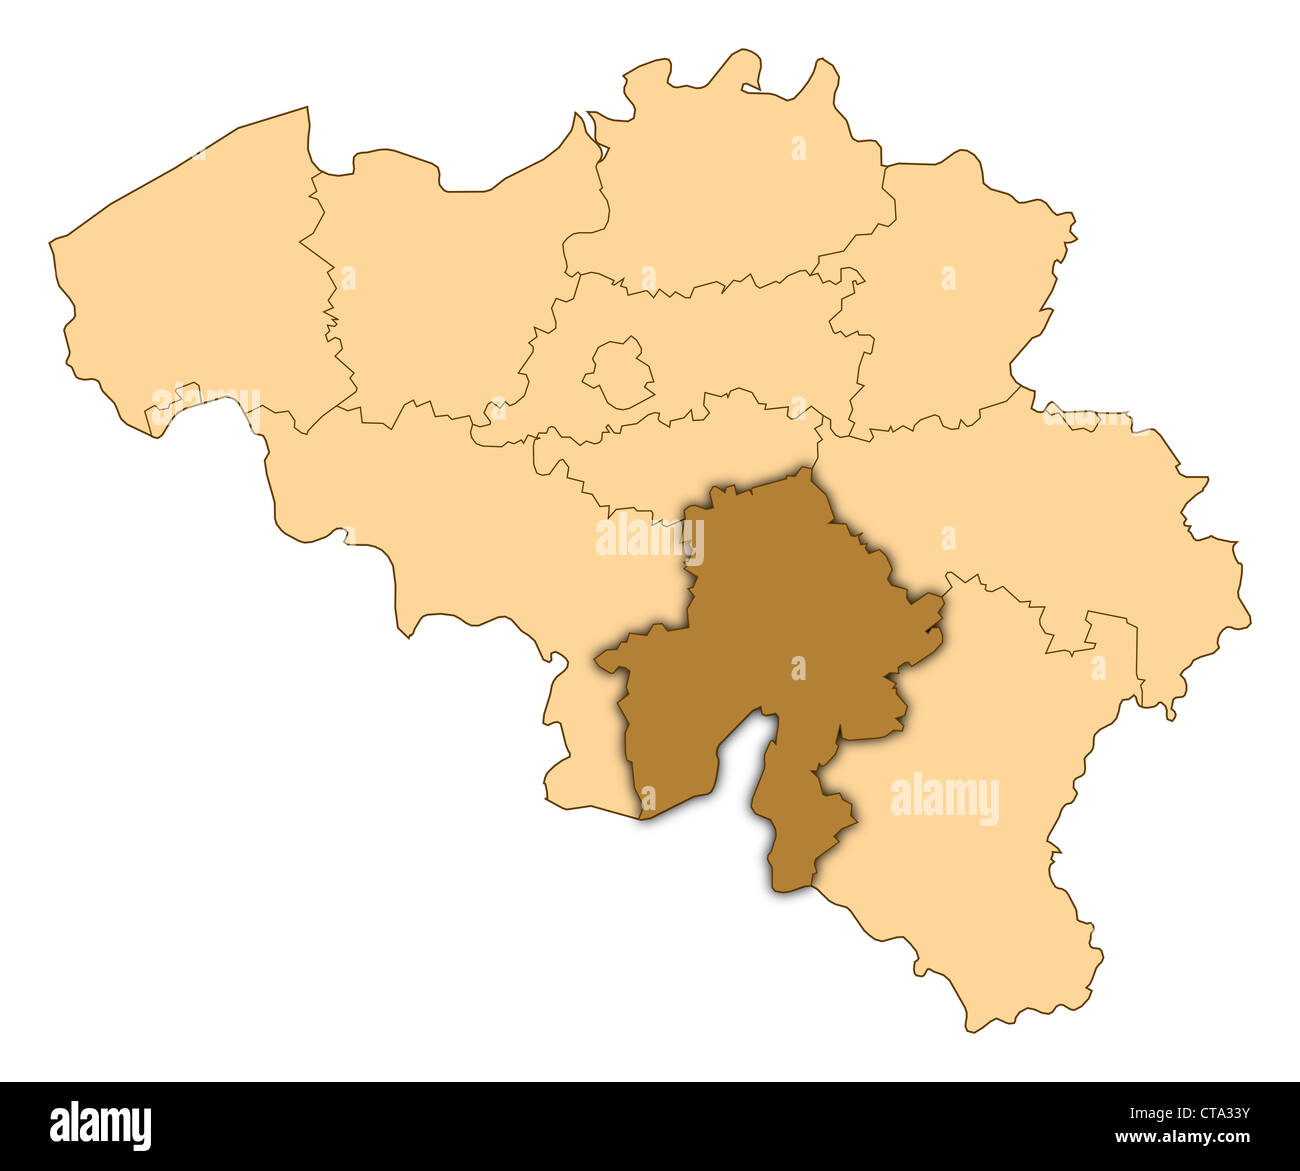 Map of belgium where namur is highlighted stock photo 49394463 alamy map of belgium where namur is highlighted gumiabroncs Images